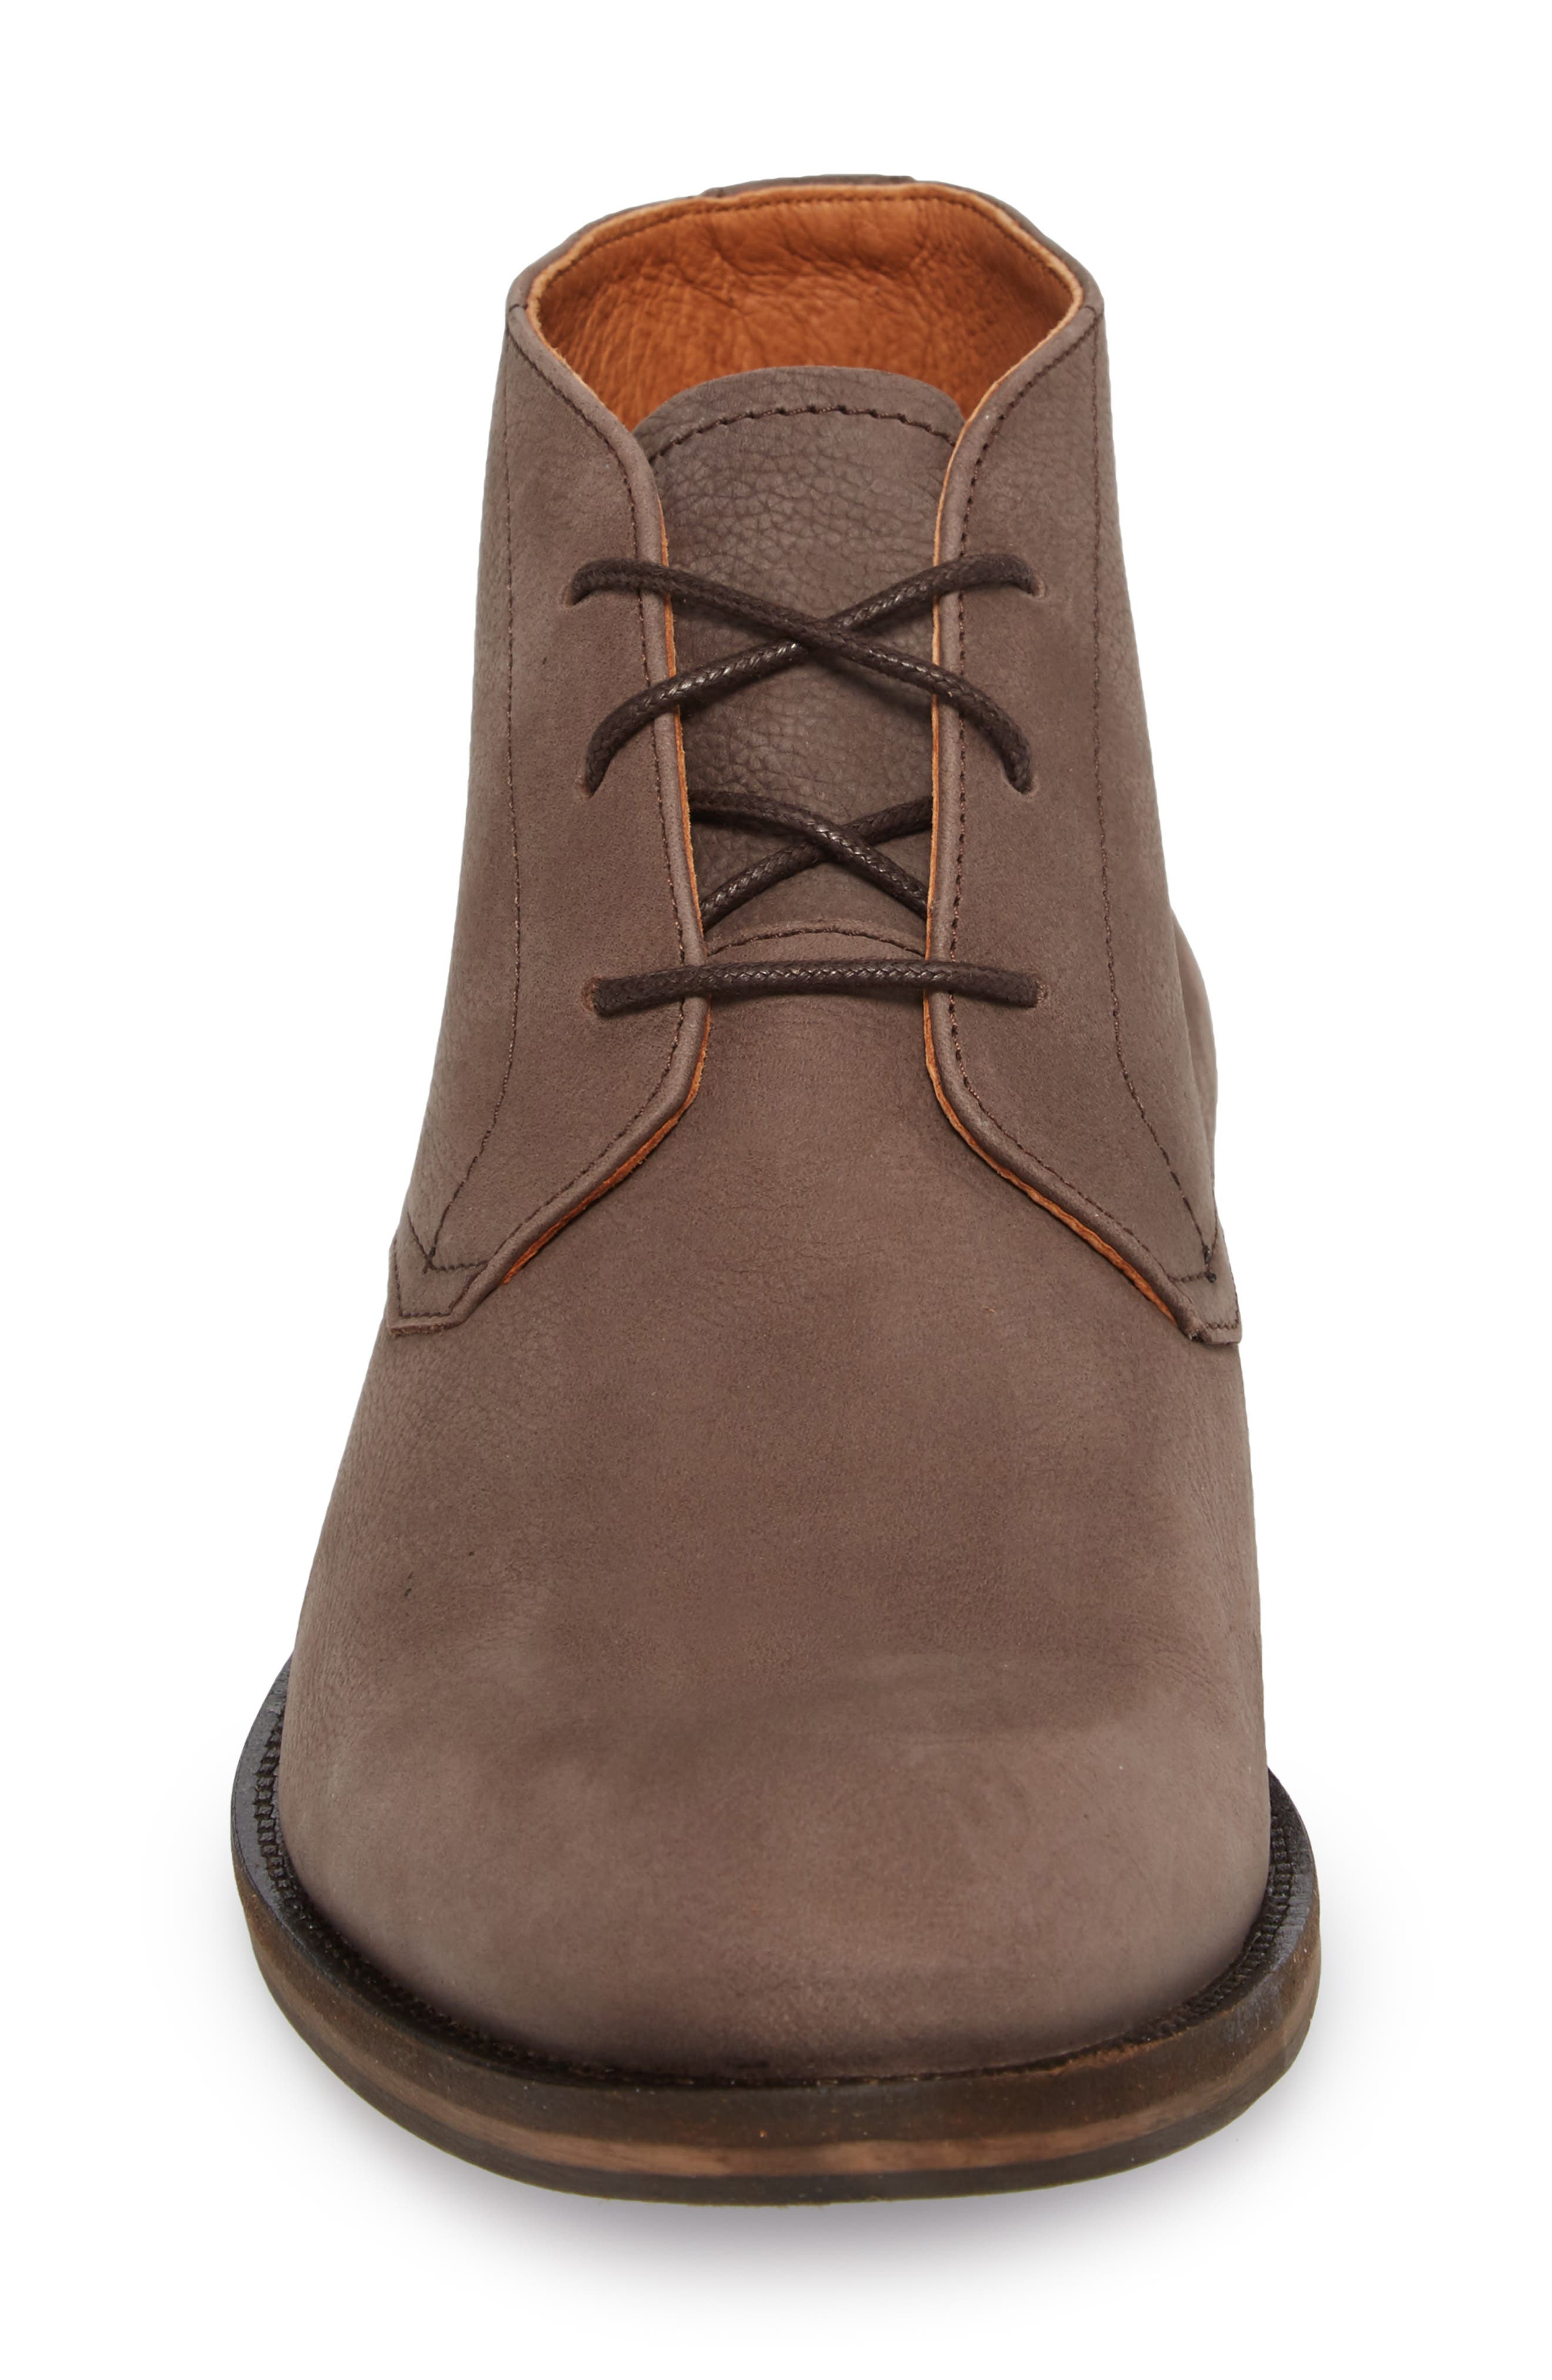 Barber Road Chukka Boot,                             Alternate thumbnail 4, color,                             Tobacco Leather